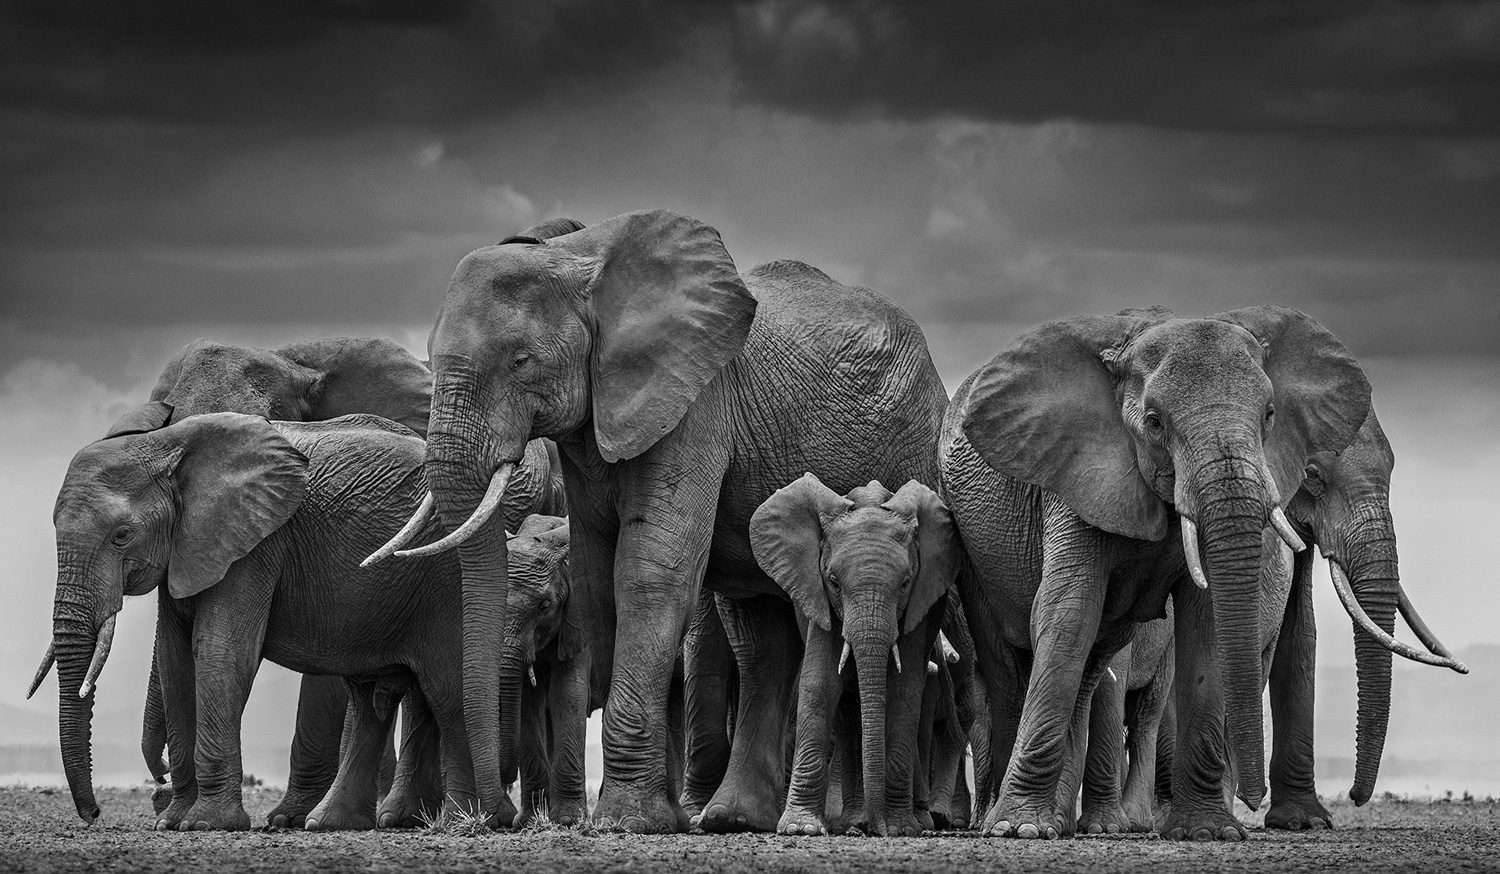 The Circle of Life, Amboseli, Kenya